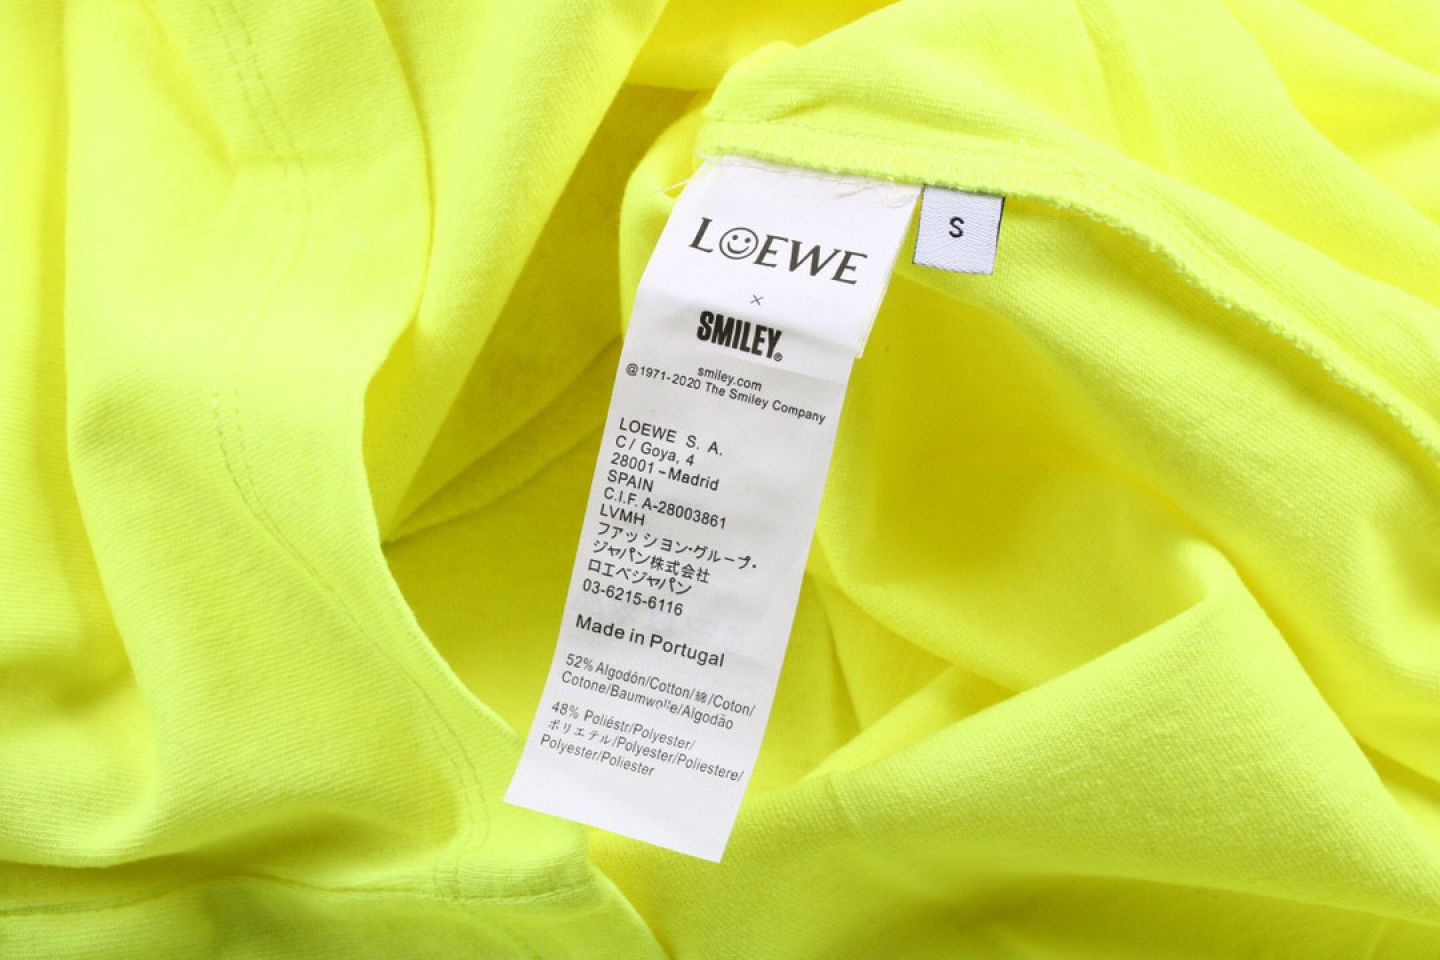 Shirt LOEWE x SMILEY 20ss fluorescent smiley short sleeve T-shirt yellow 4 loewe_x_smiley_20ss_fluorescent_smiley_short_sleeve_t_shirt_yellow_4